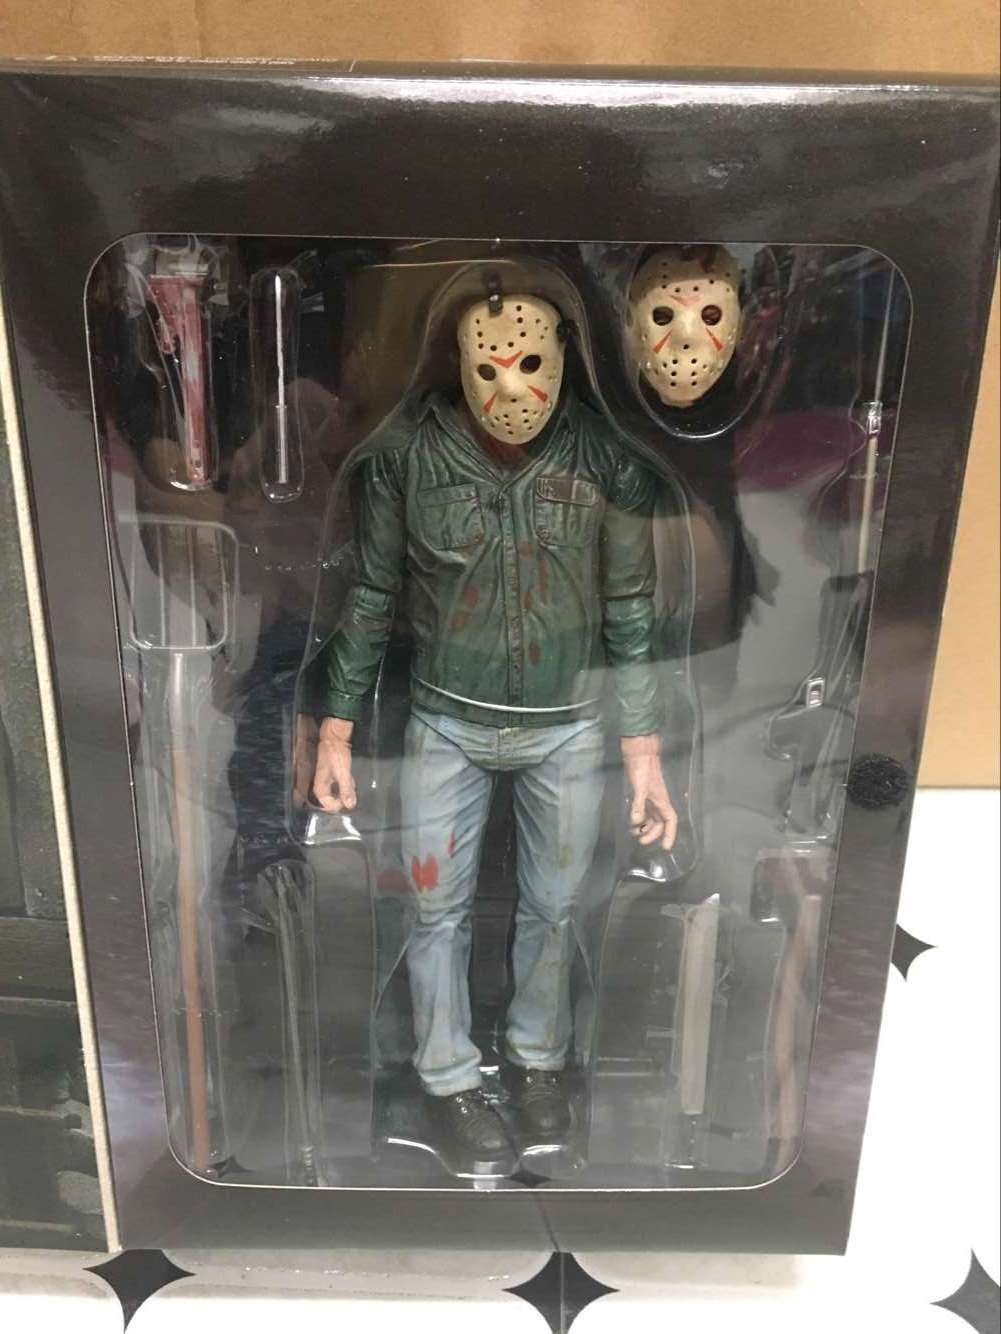 NECA A Nightmare on Elm Street 3 Dream Warriors PVC Action Figure Collectible Model Toy Friday the 13th Part 3 3D Jason Voorhees neca marvel legends venom pvc action figure collectible model toy 7 18cm kt3137